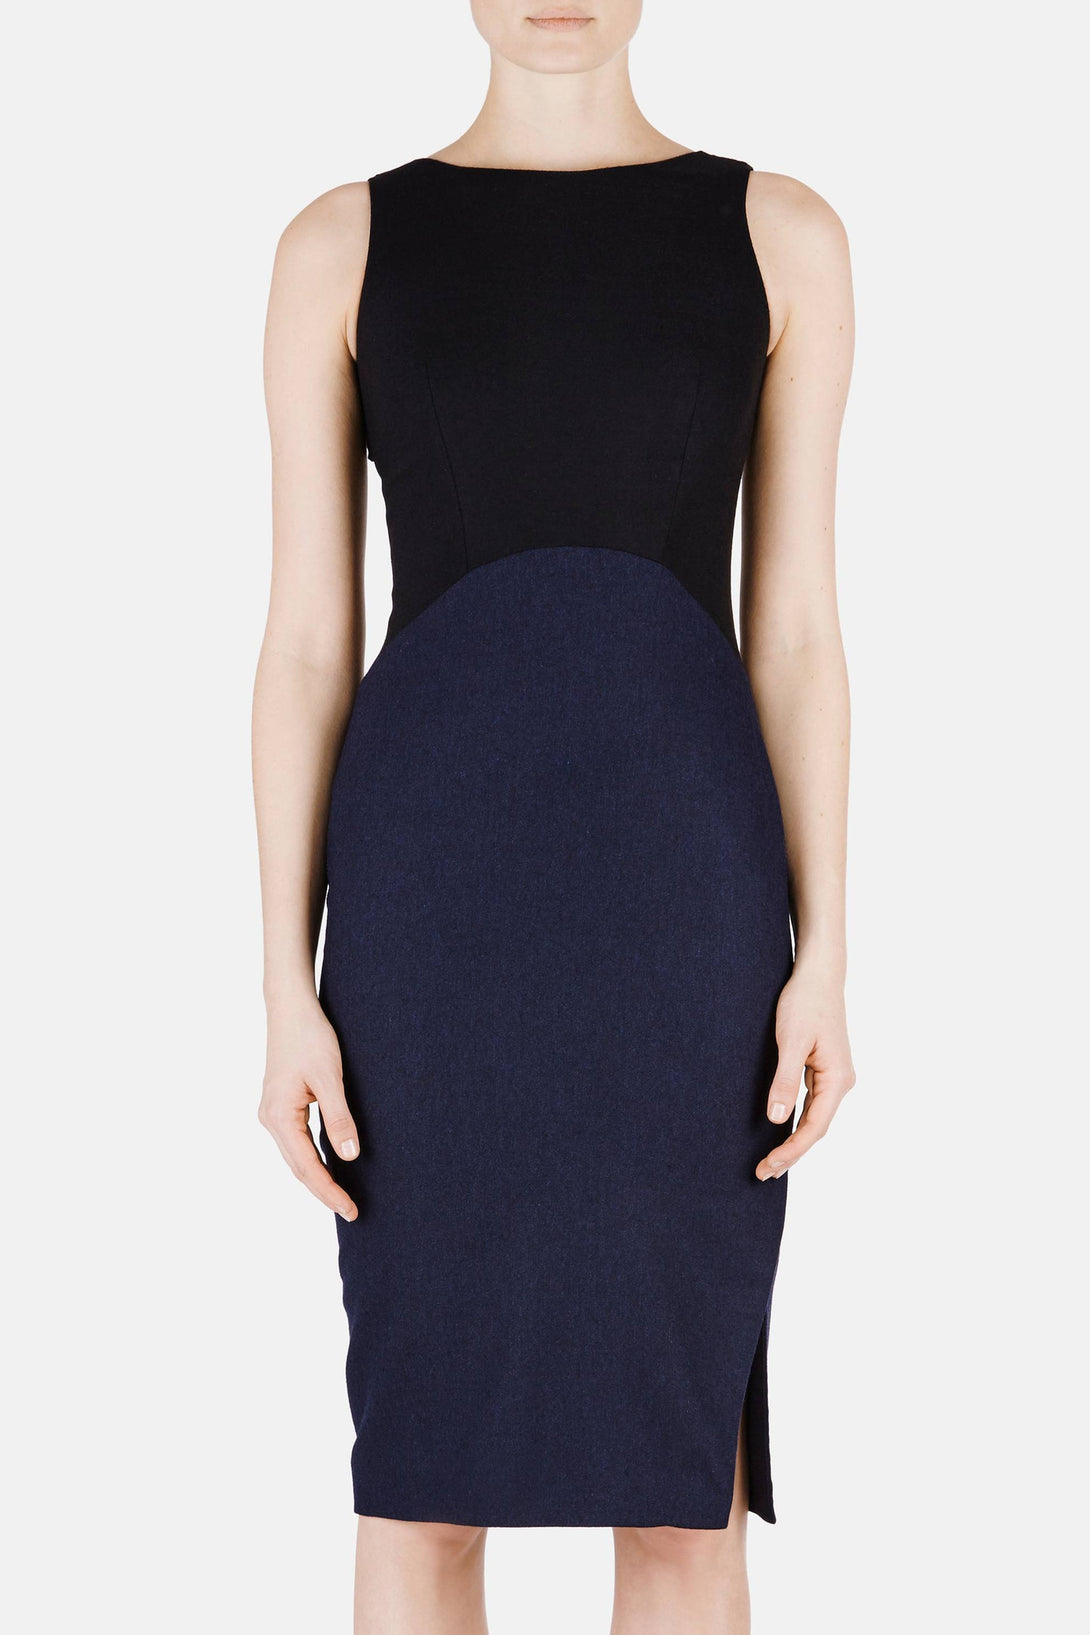 Shadow Dress - Navy